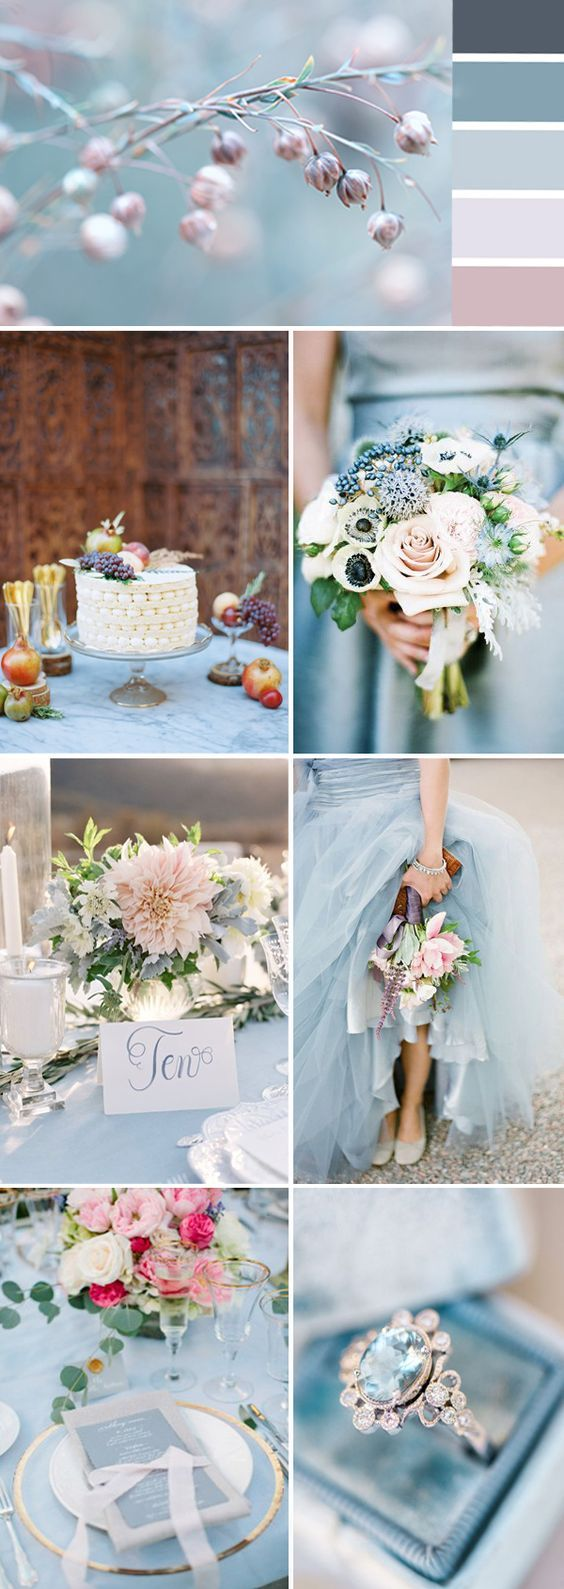 Top 10 Wedding Color Ideas for 2017 Spring | Dusty blue weddings ...